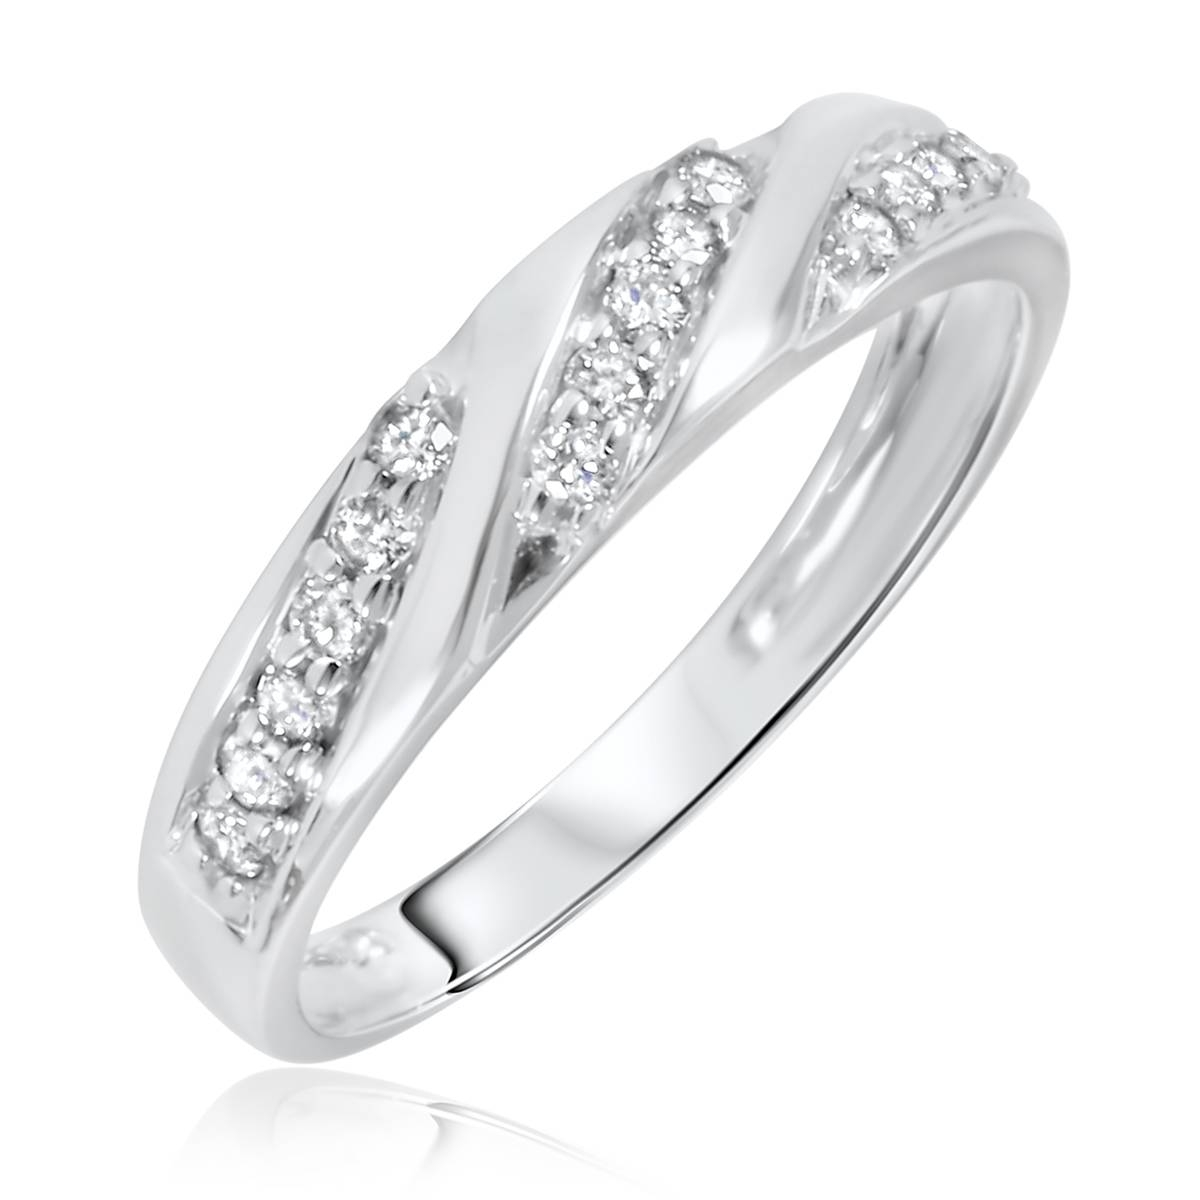 1 Carat Diamond Trio Wedding Ring Set 10k White Gold Regarding White Gold Wedding Rings For Women (View 5 of 15)